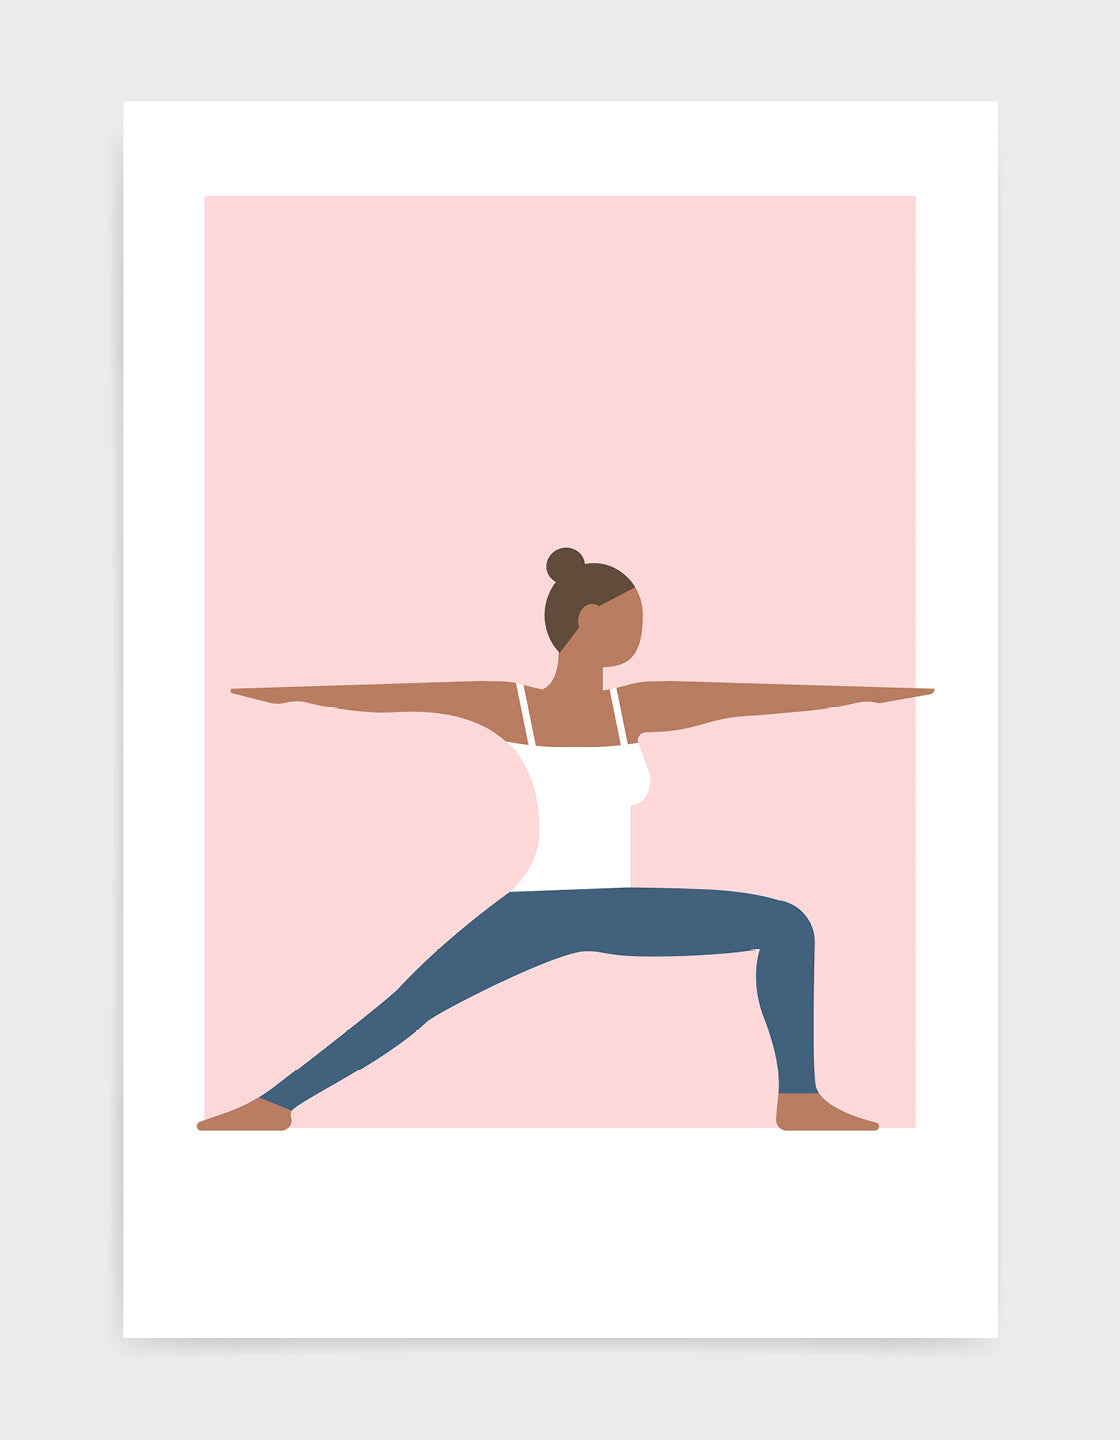 art print of a woman in warrior 2 yoga position against a pink background